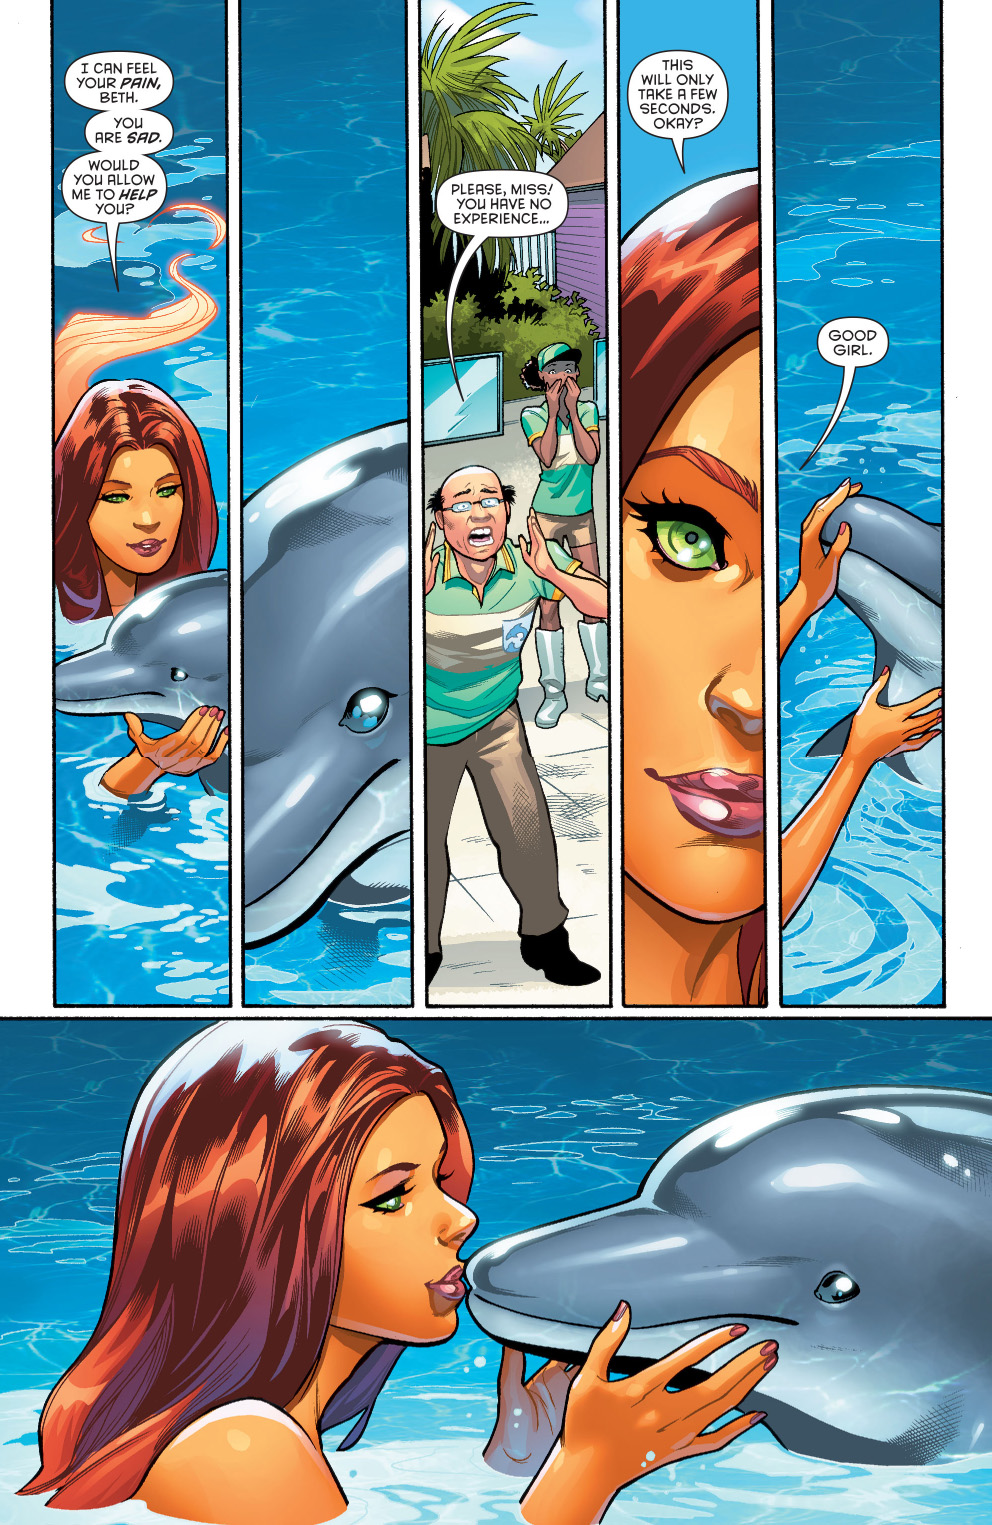 Starfire helps out a dolphin comicnewbies